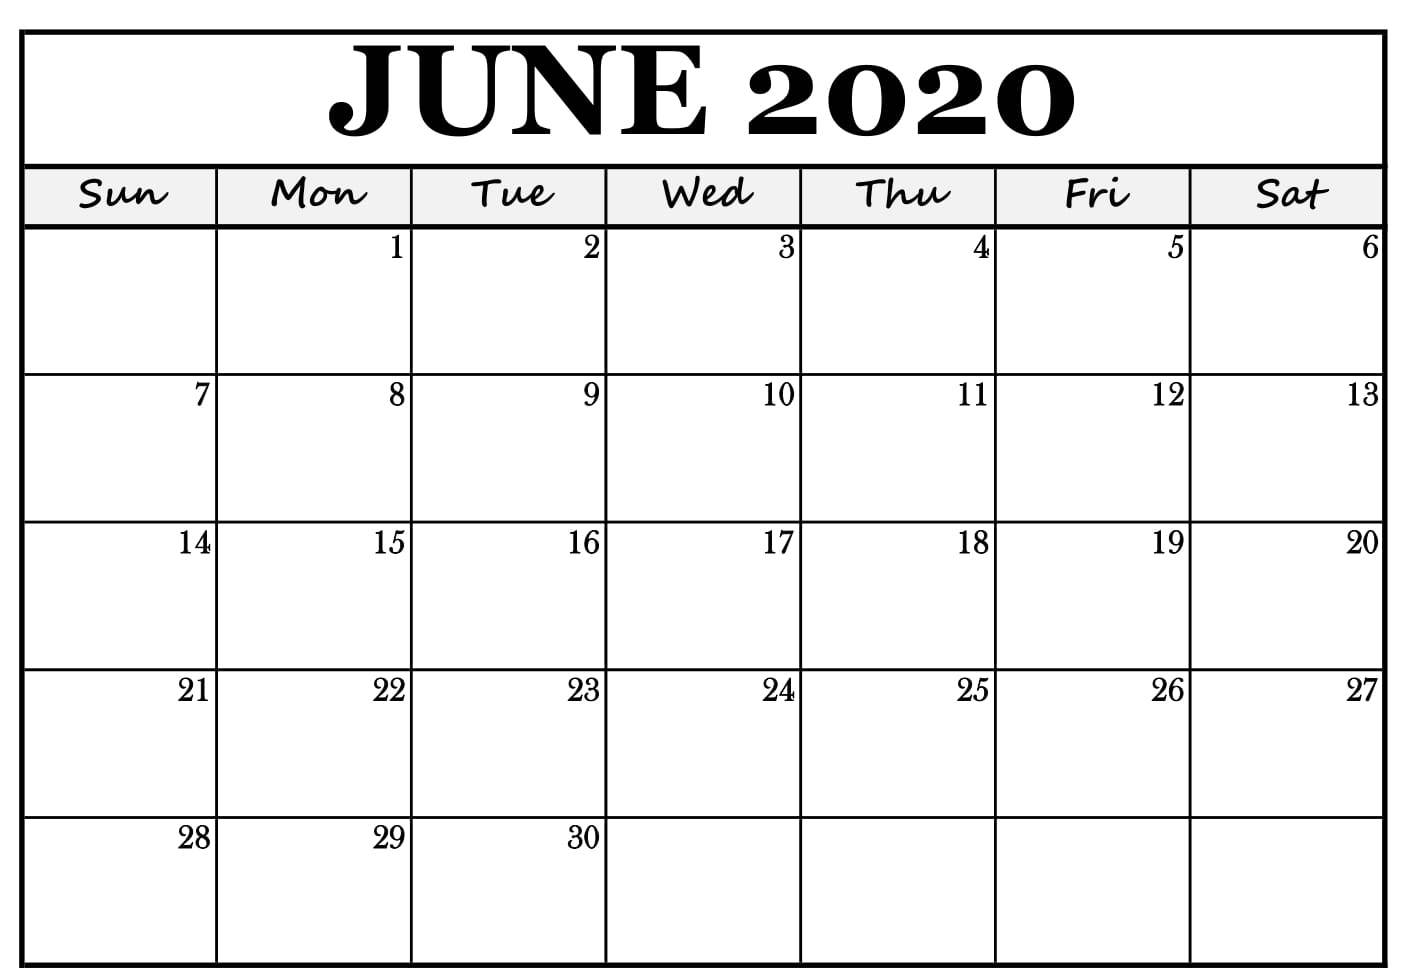 June 2020 Calendar Planner With Notes